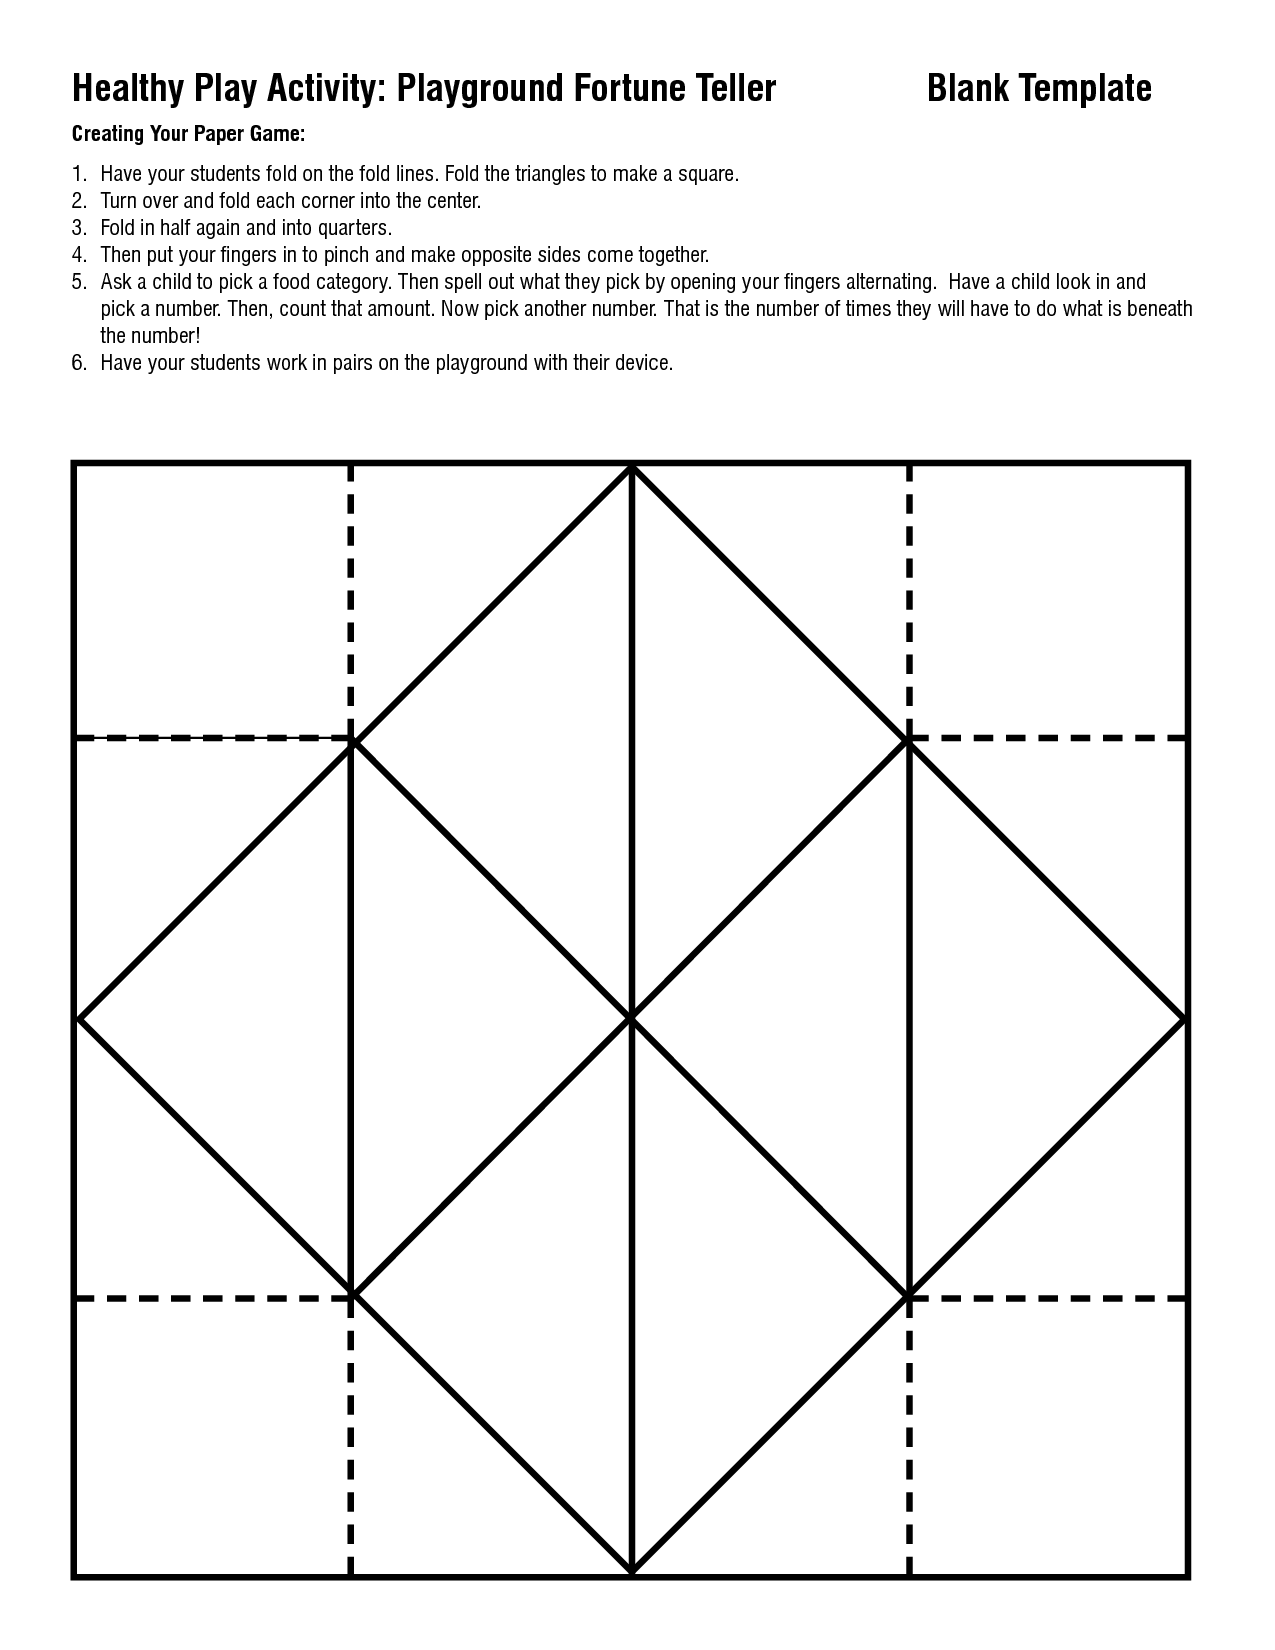 7 best images of fortune teller template printable paper